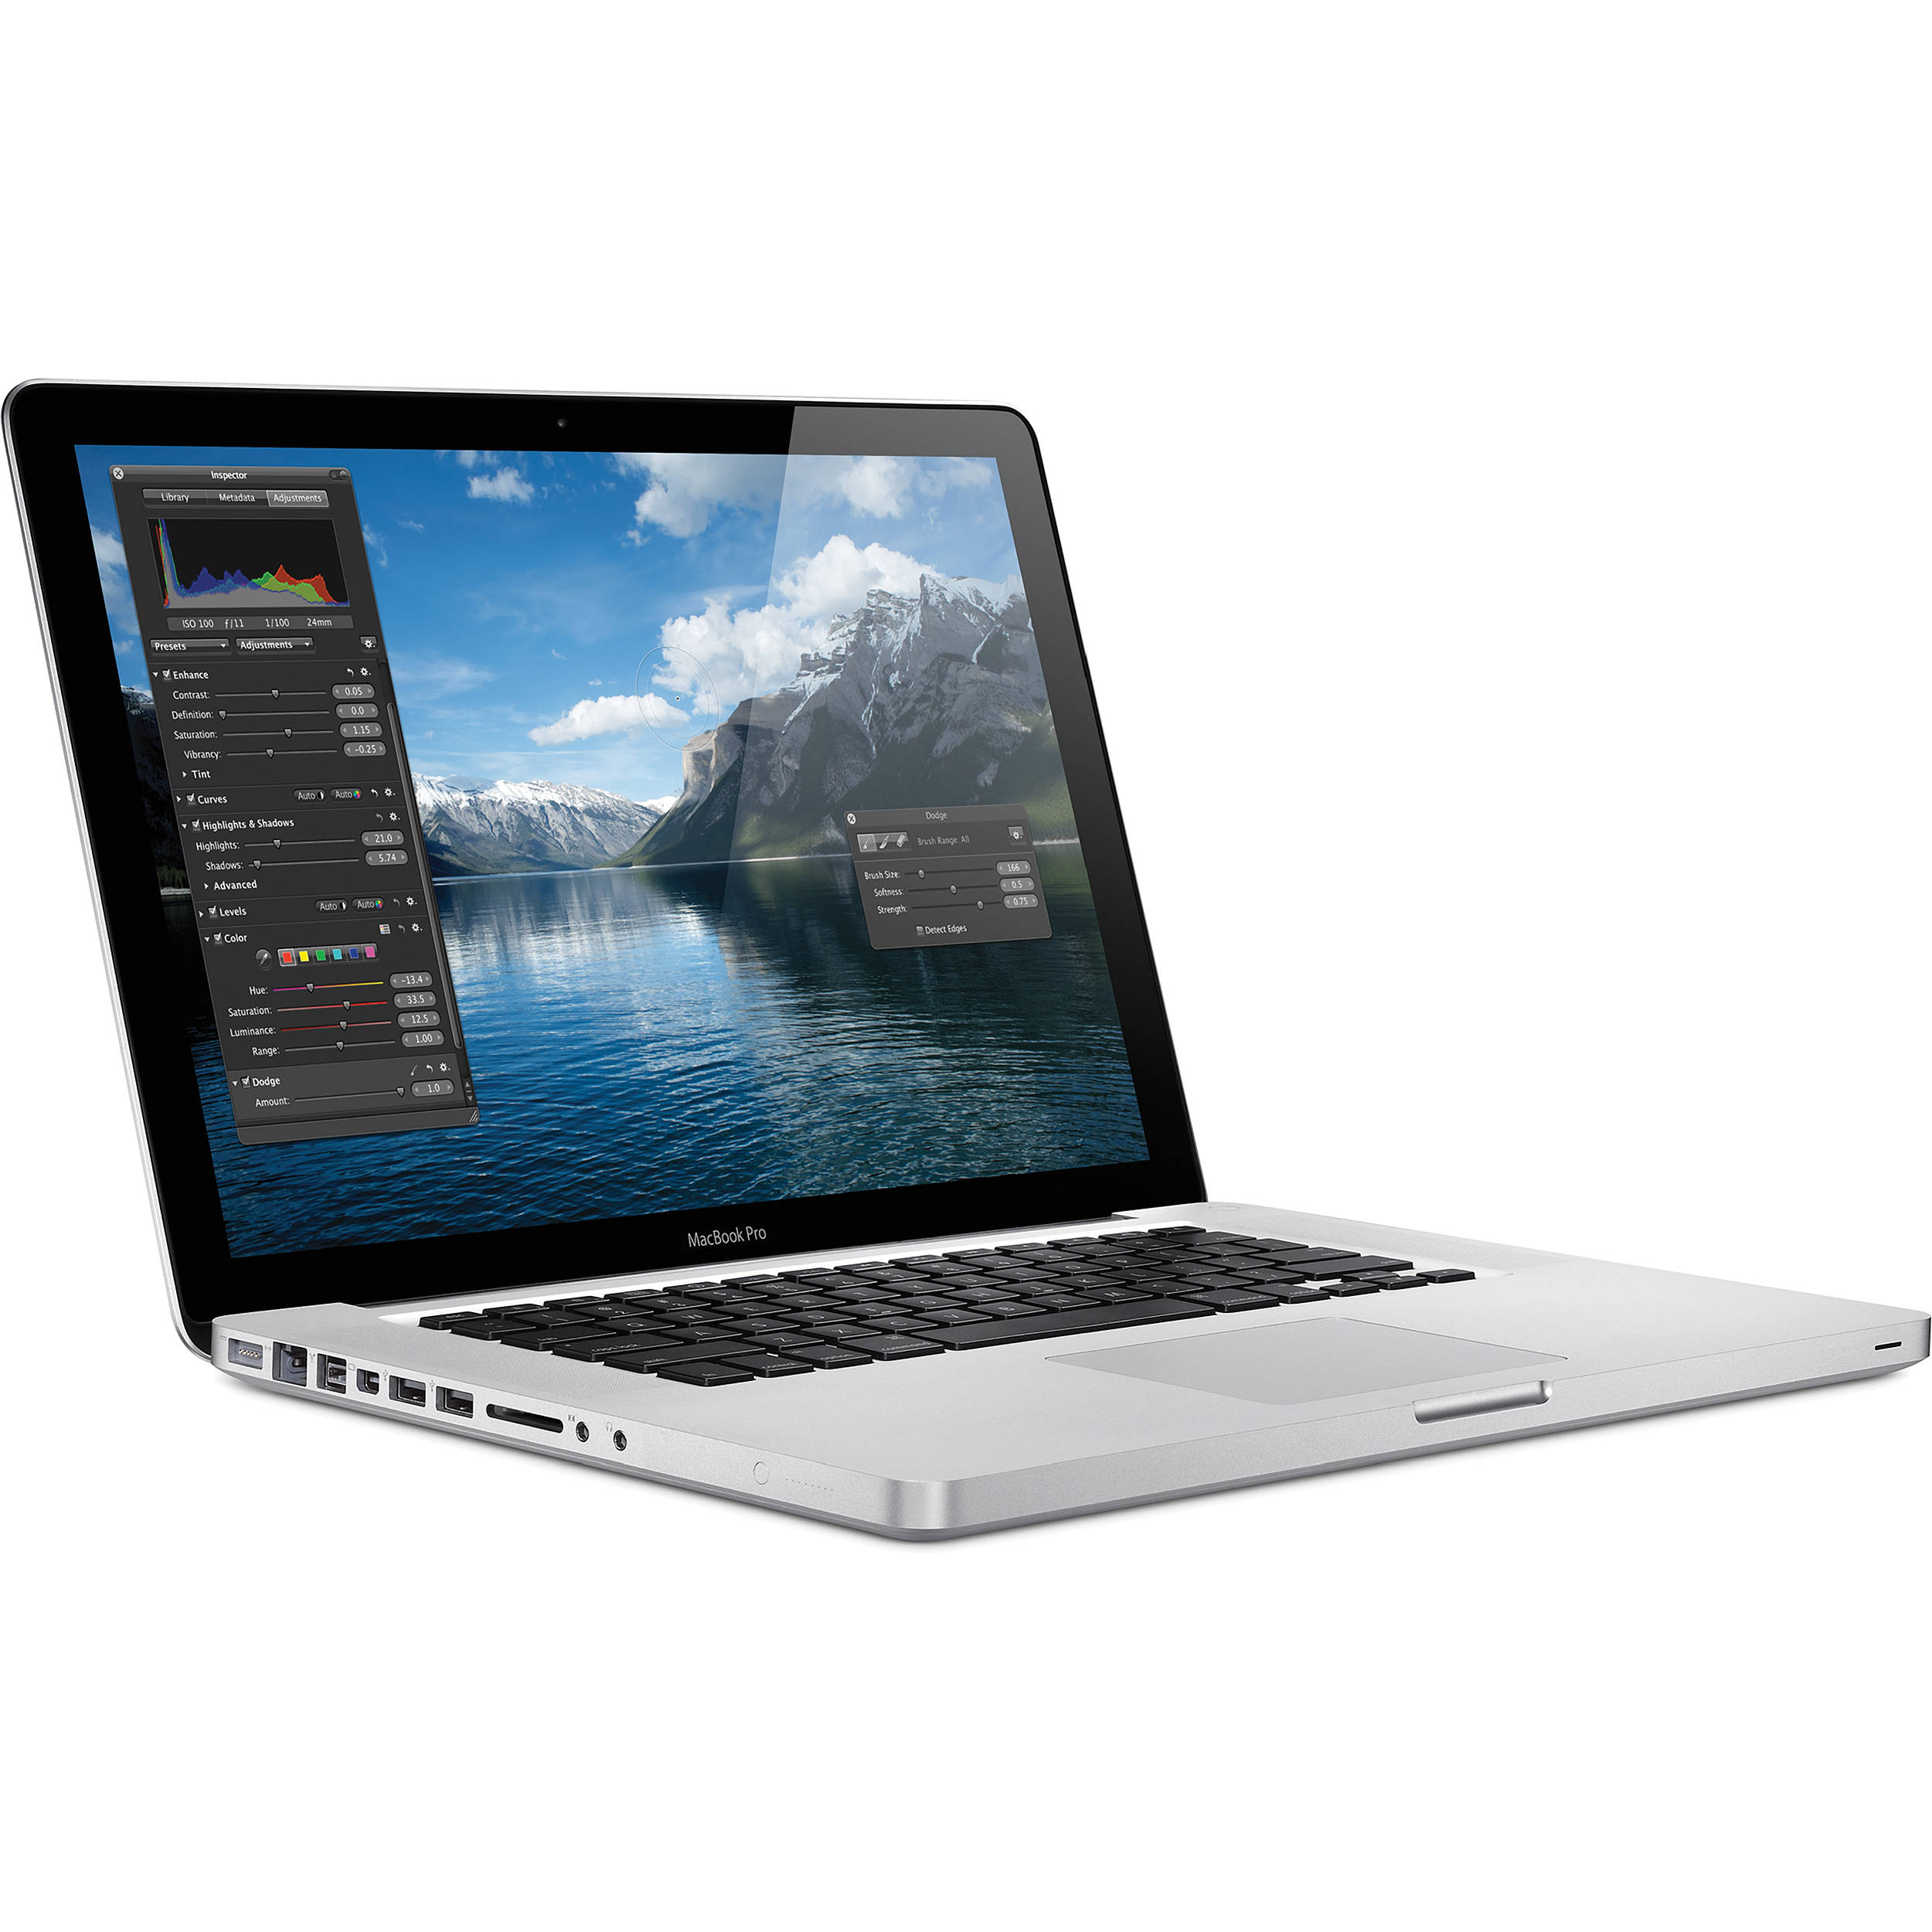 macbook pro 15 - photo #40